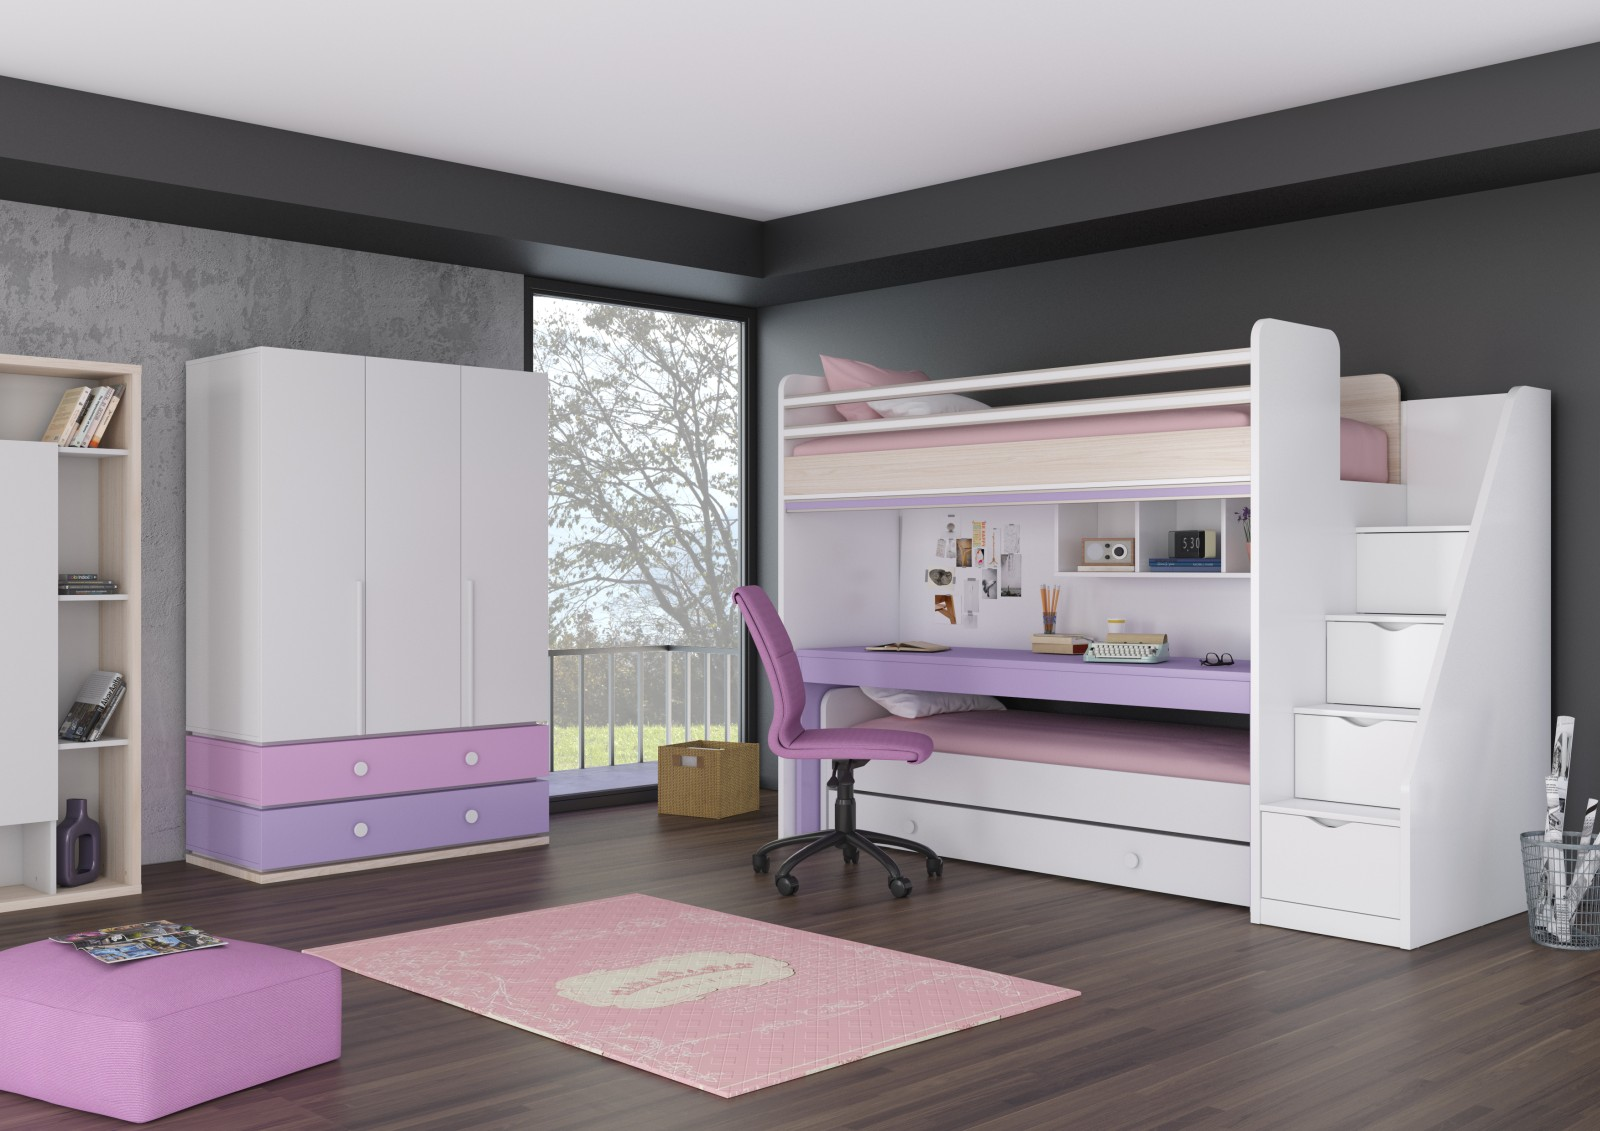 design nowej generacji ka pi trowe new joy meble z francji belgii i niemiec meble aldo. Black Bedroom Furniture Sets. Home Design Ideas